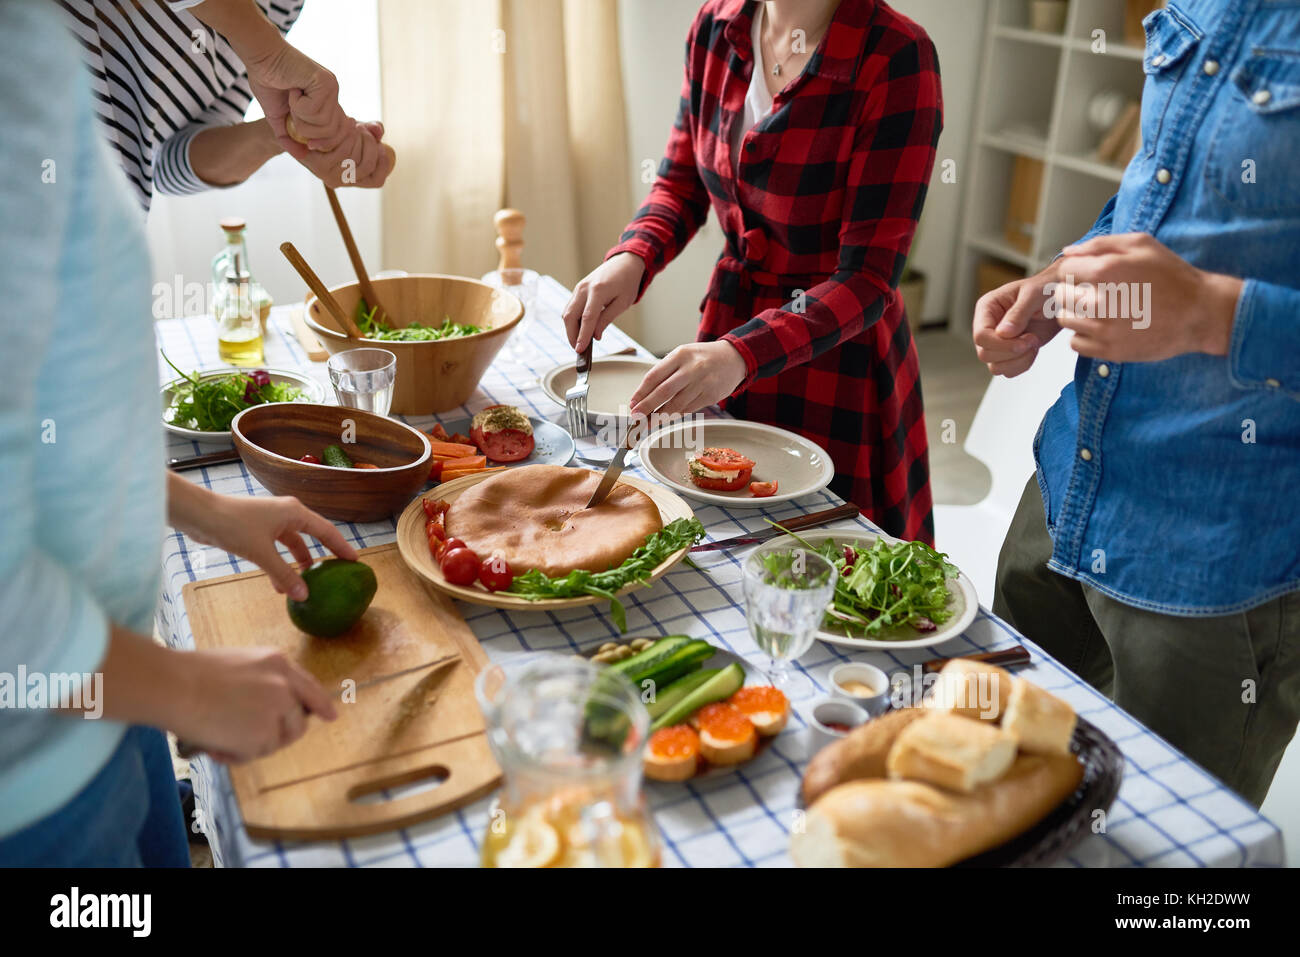 Low section of unrecognizable people cutting pie and vegetables standing around dinner table with homemade food - Stock Image